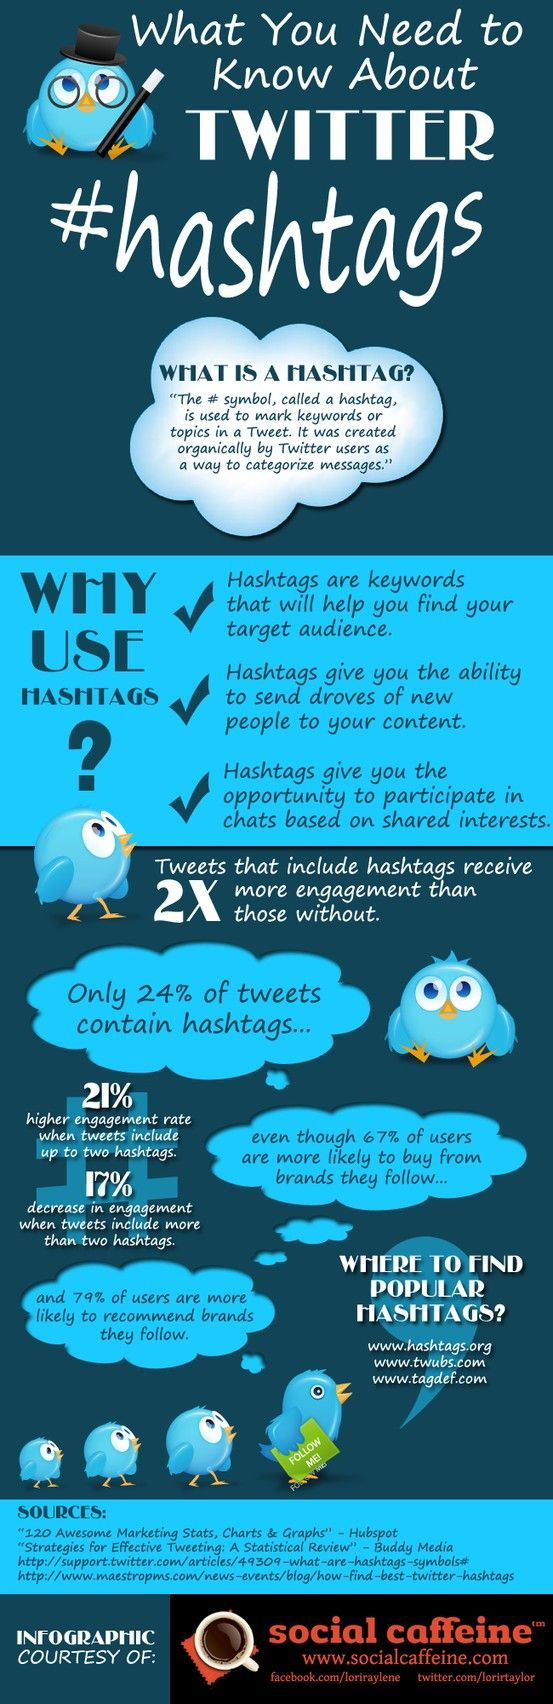 What is a Hashtag? :: eAssistant-worldwide, Social Media Specialist